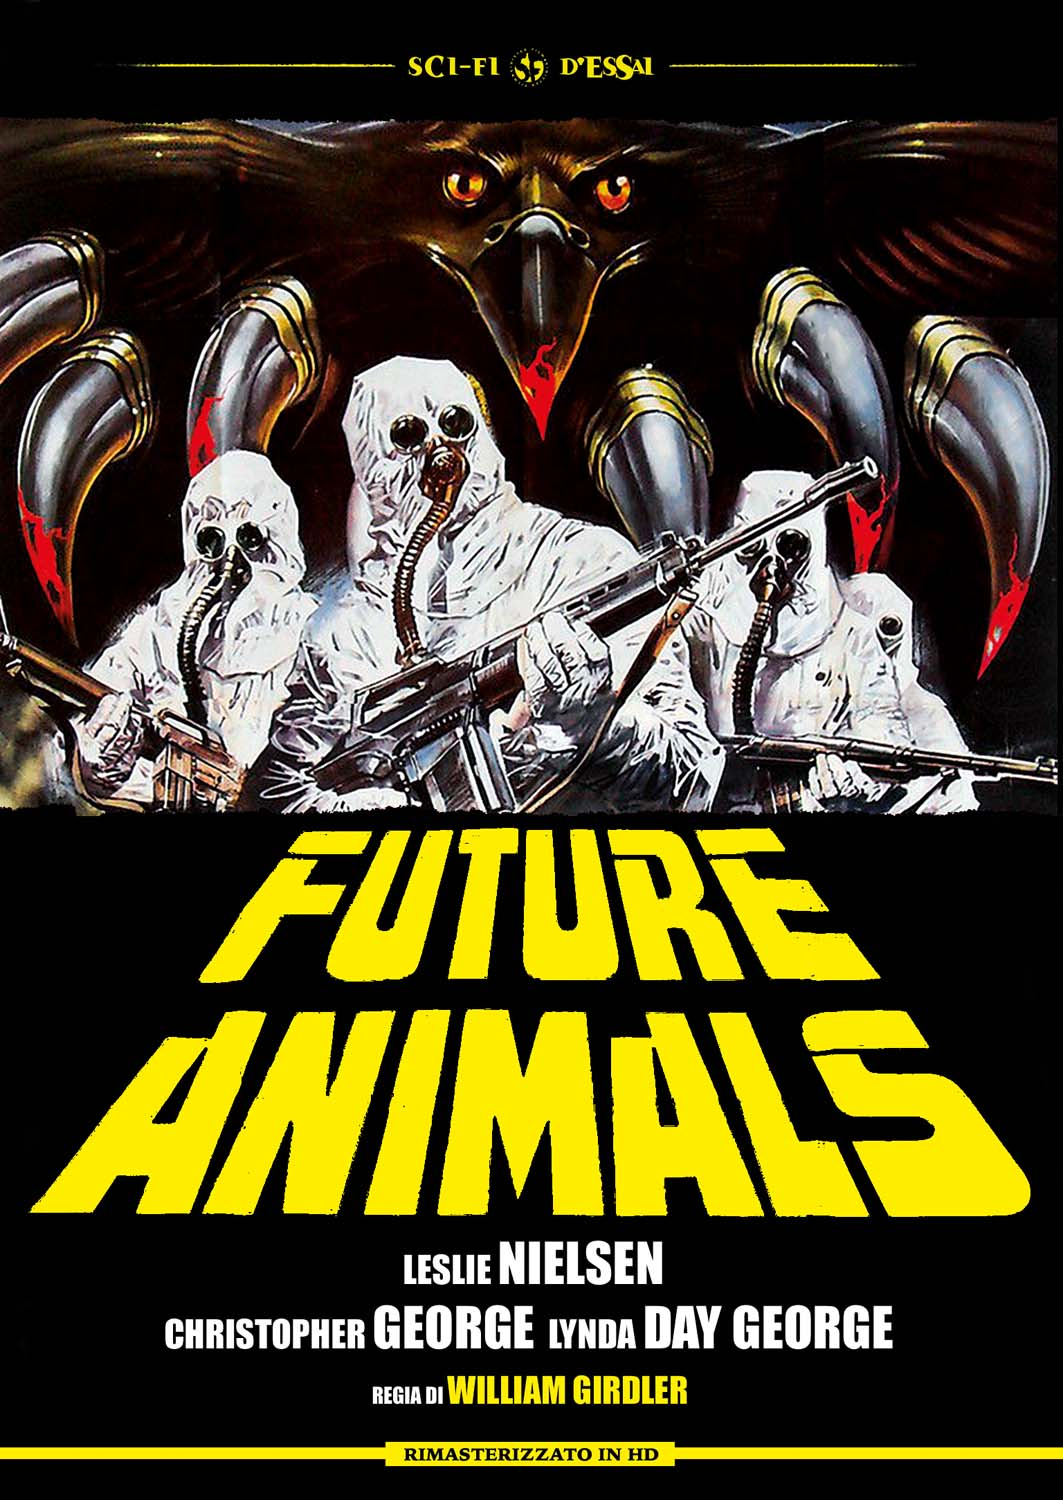 FUTURE ANIMALS (RESTAURATO IN 4K) (DVD)